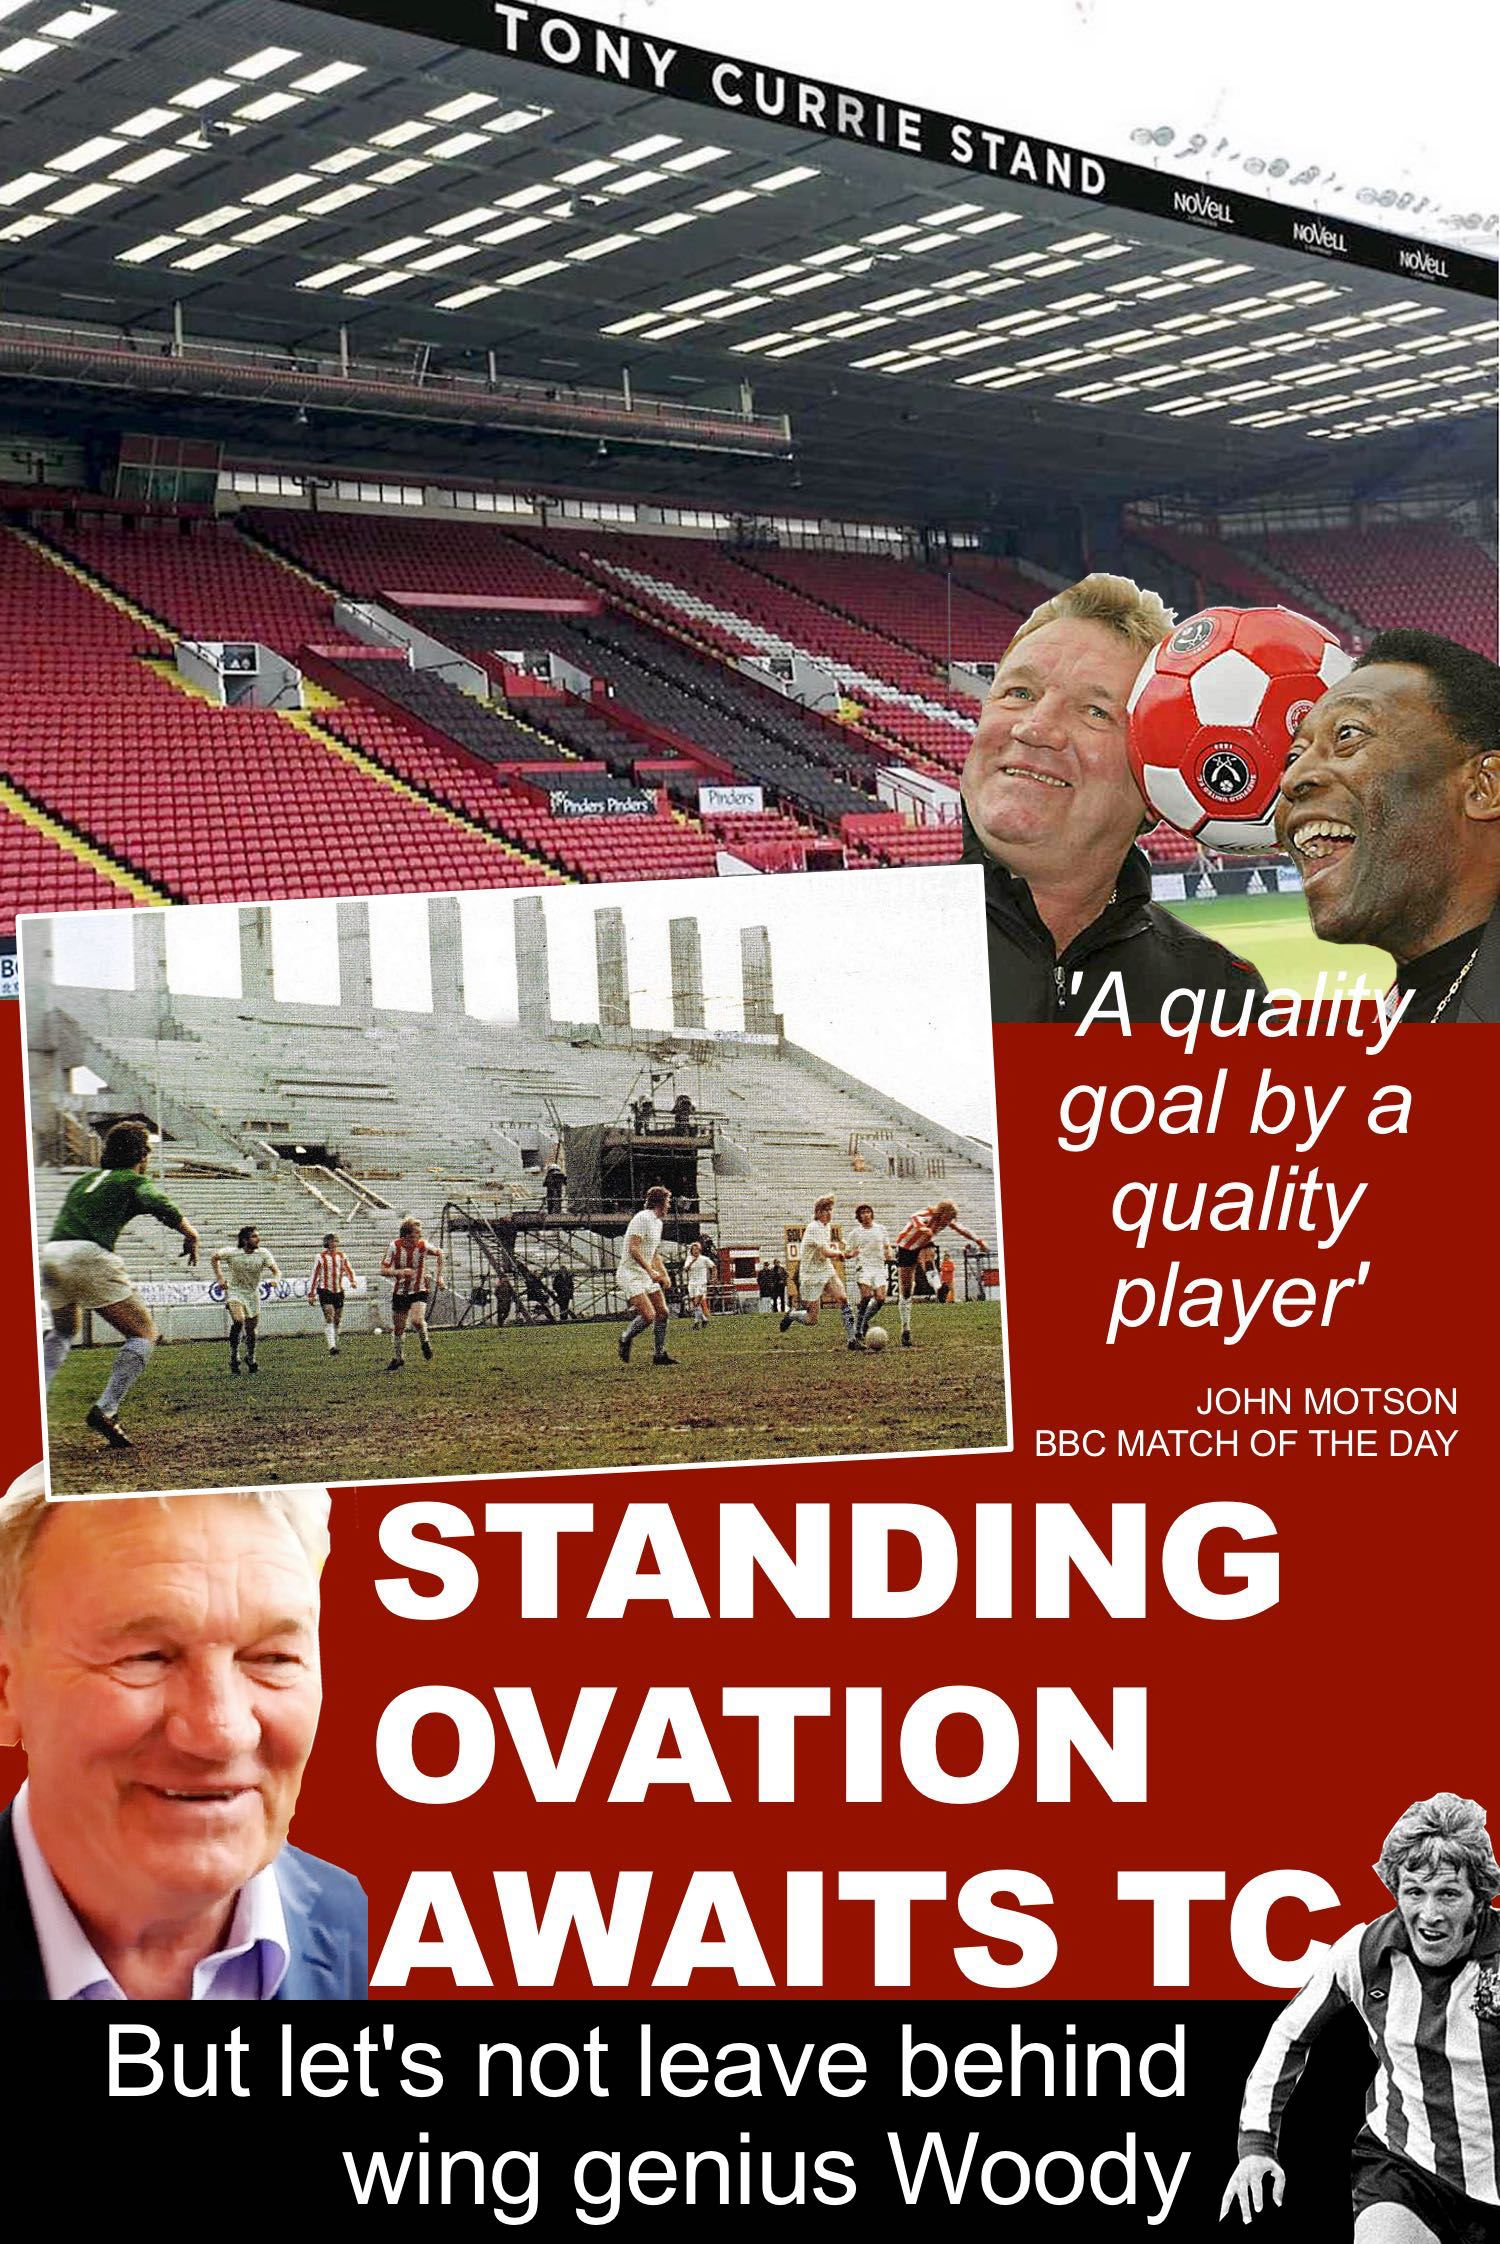 Sheffield United living legend Tony Currie has had a stand named after him at Bramall Lane, unveiled for the visit of Italian giants Internazionale. But have the Blades overlooked another United great, Alan Woodward?